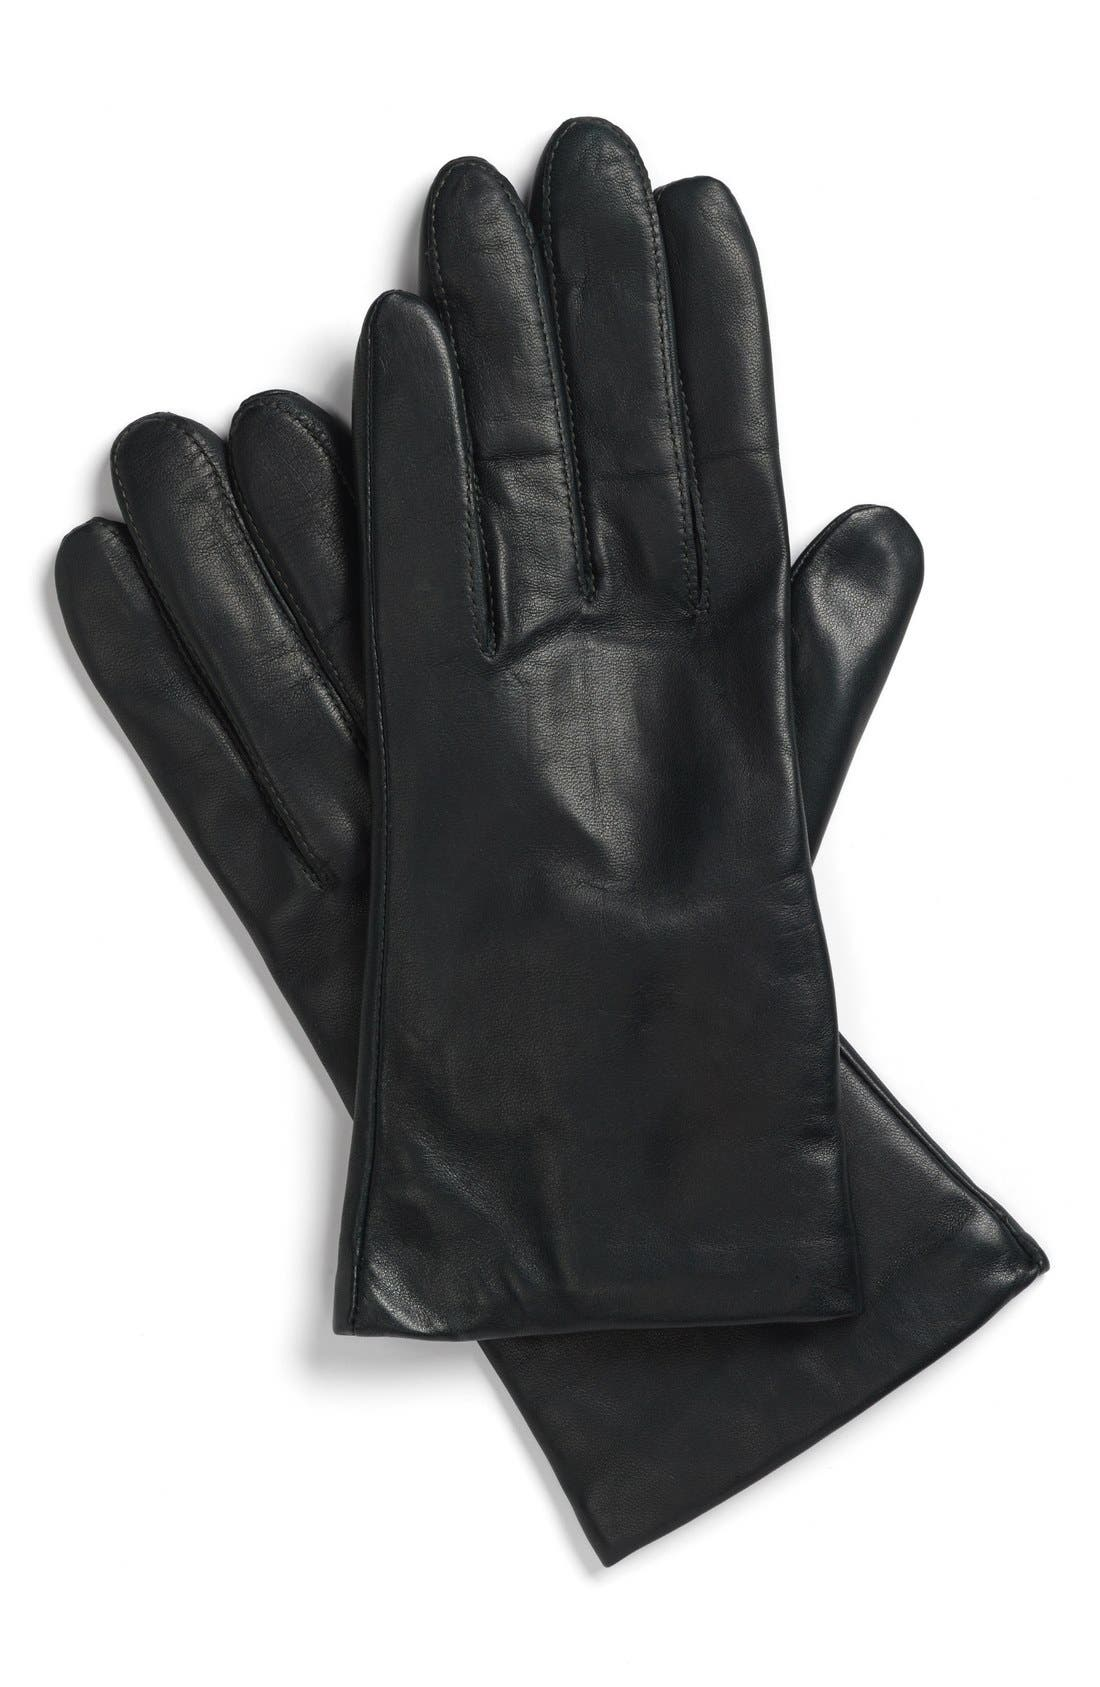 Main Image - Fownes Brothers Cashmere Lined Leather Gloves